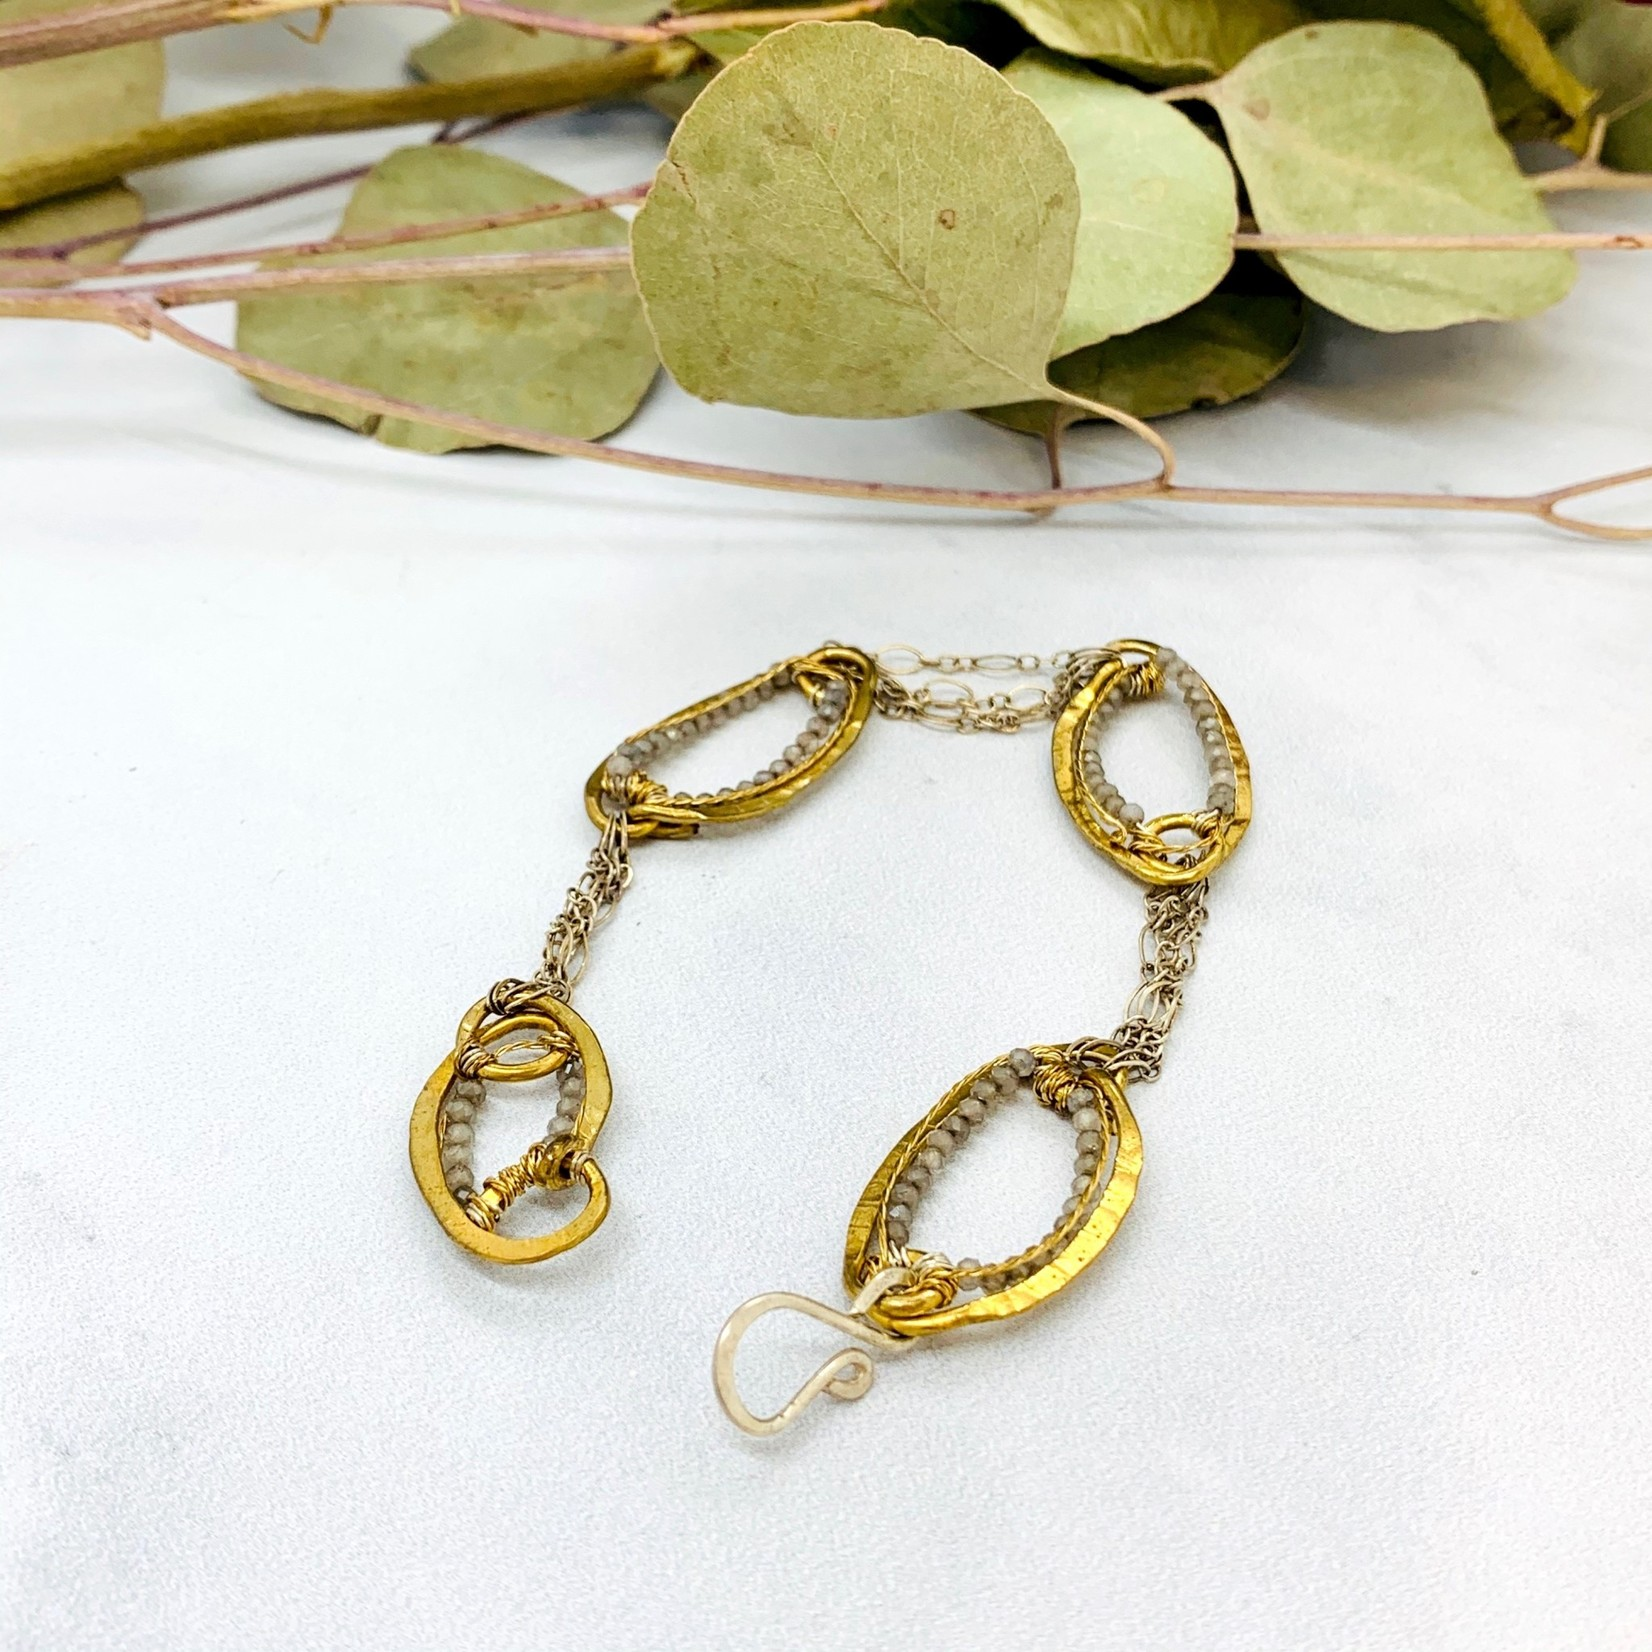 Handmade Brass Ovals beaded with Bear Quartz and connected with Sterling Silver Chains. Hook Closure